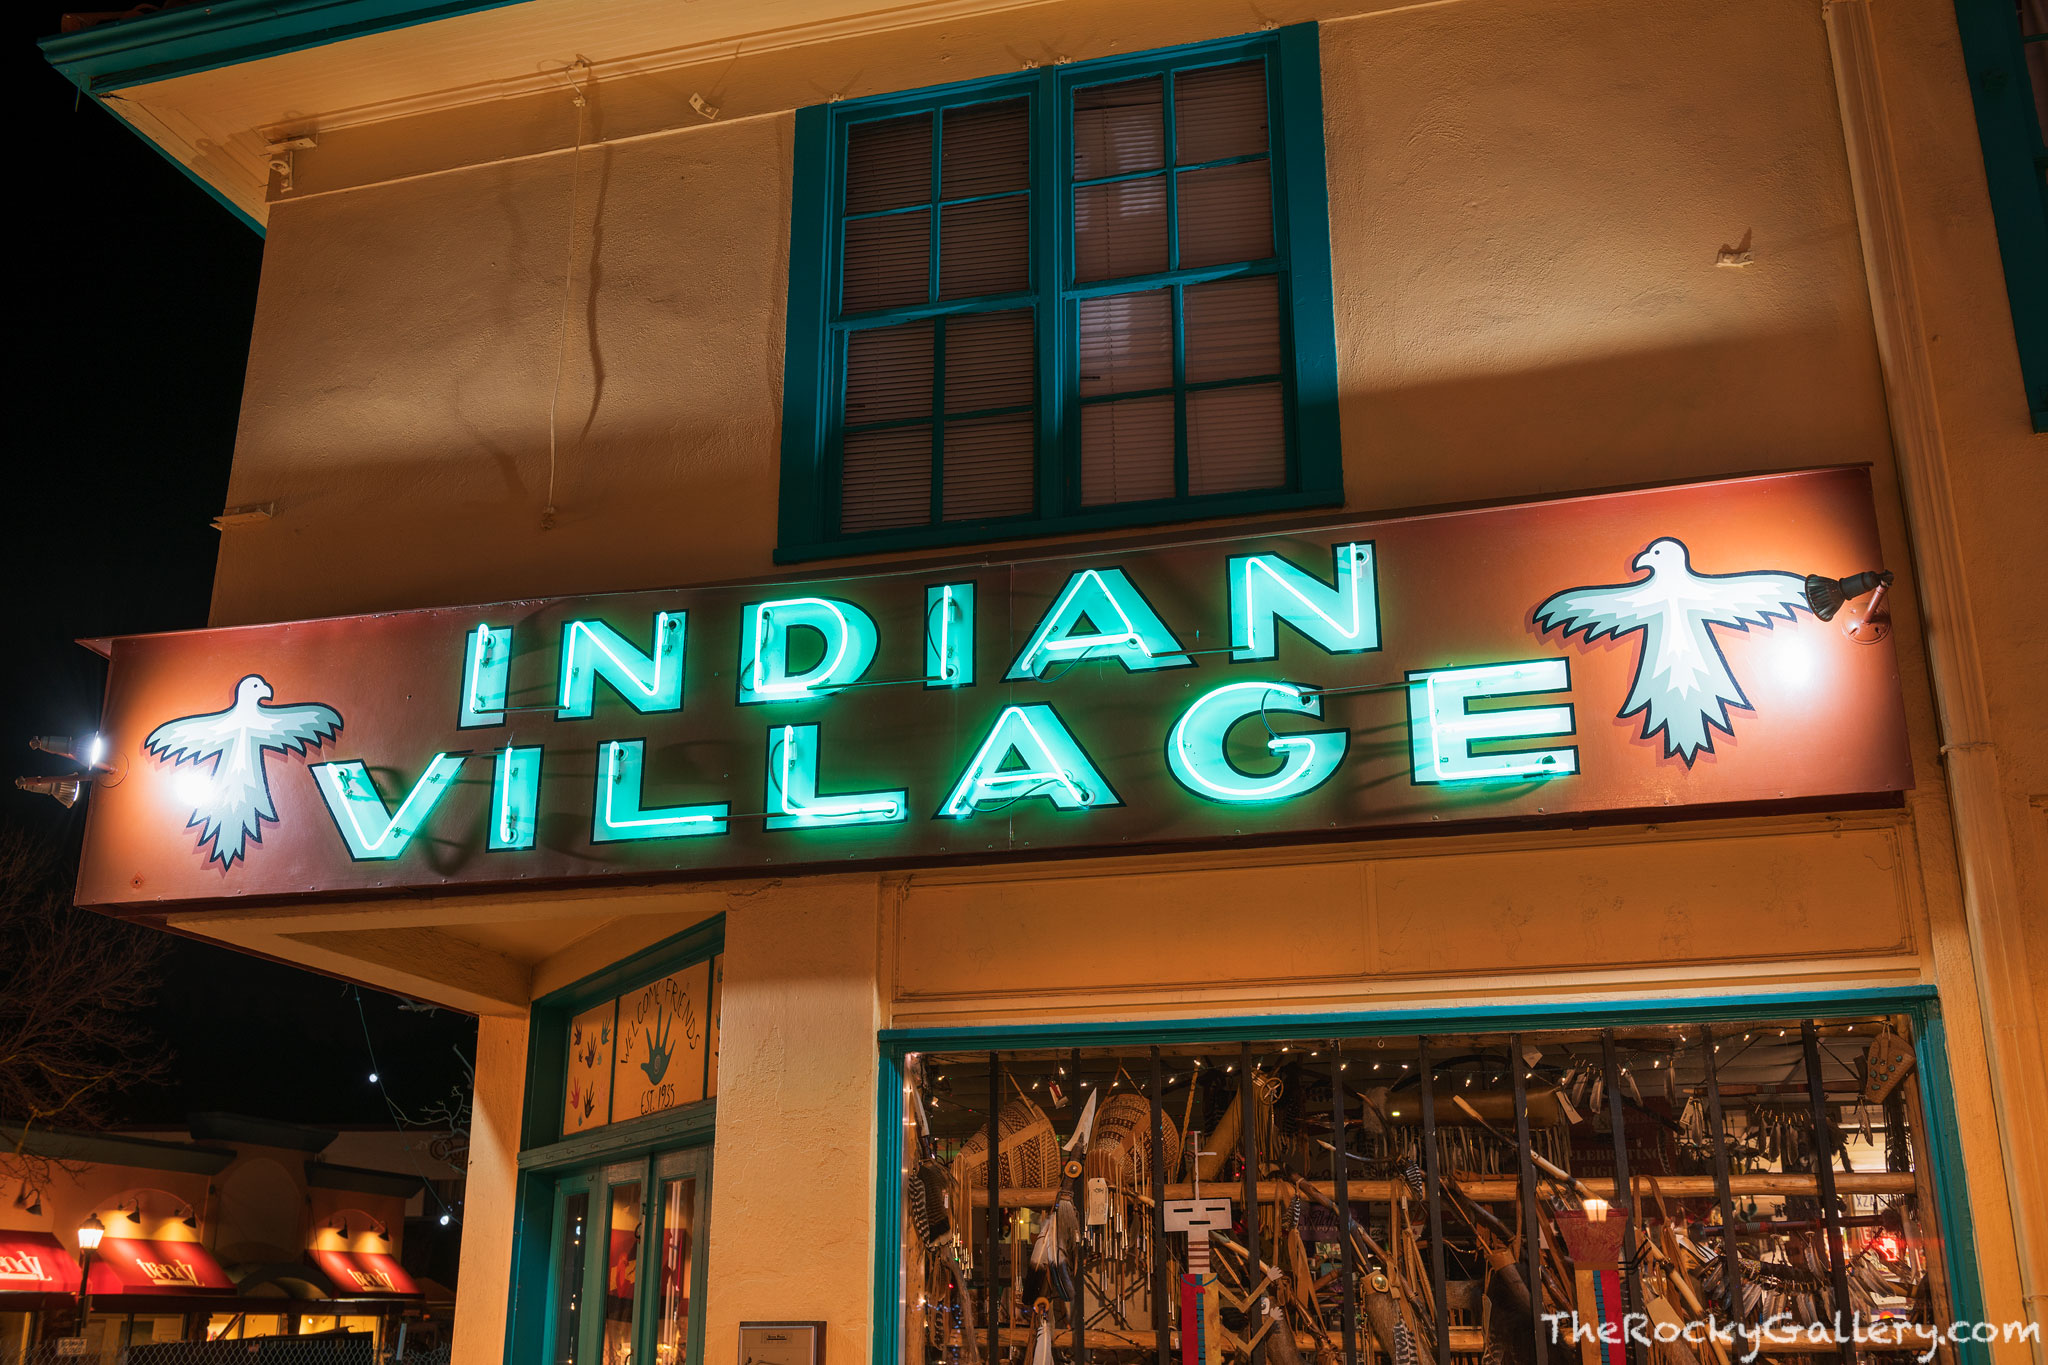 100 Elkhorn Ave,Millers Indian Village,Neon,Sign,Downtown,Estes Park,Stores,Photography,Landscape,Colorado,RMNP,Rocky Mountain National Park,January,Night,storefront,shopping , photo